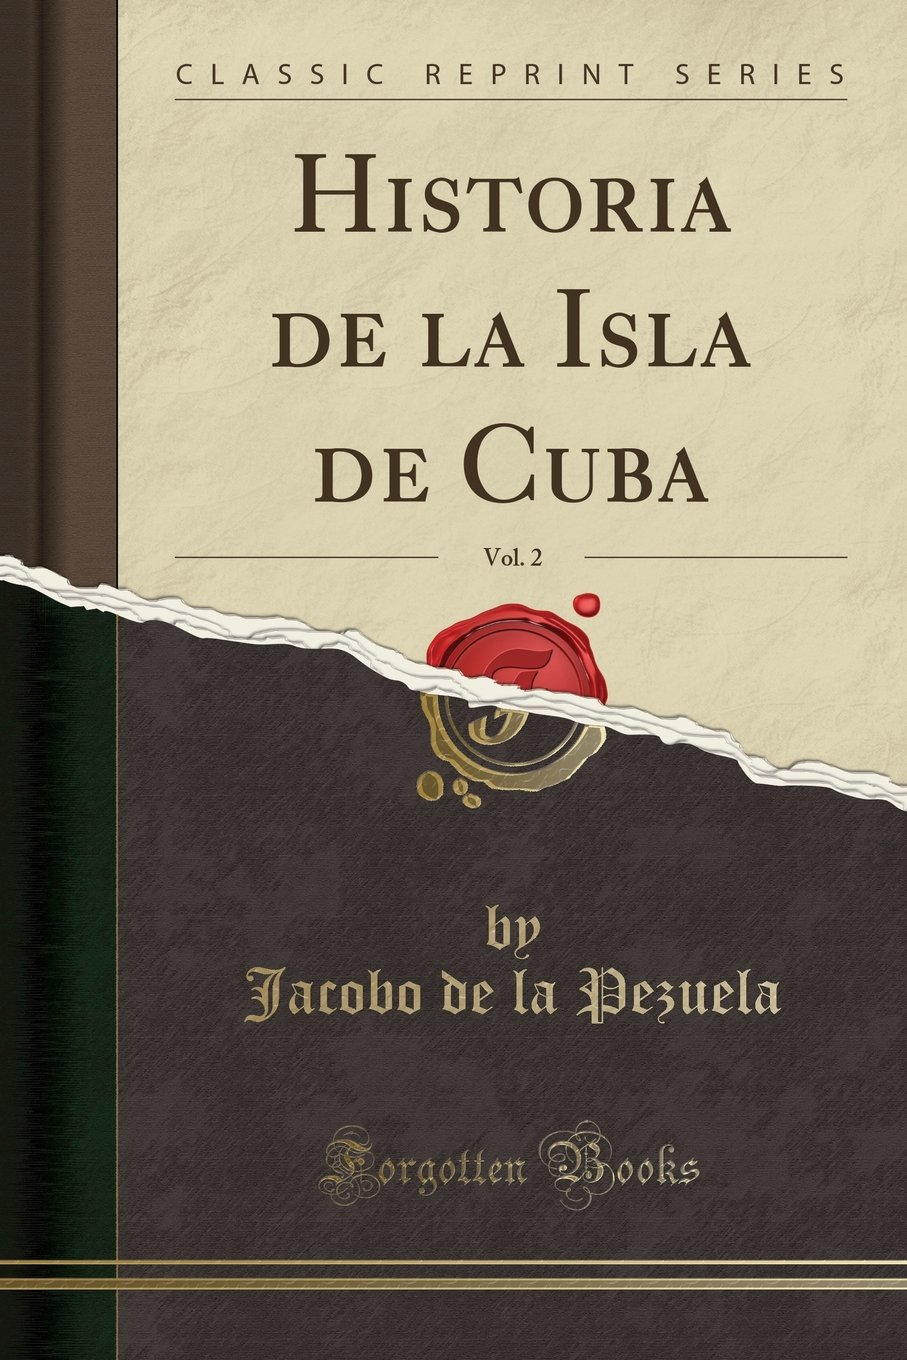 Historia de la Isla de Cuba, Vol. 2 (Classic Reprint) (Spanish Edition): Jacobo de la Pezuela: 9780656565900: Amazon.com: Books